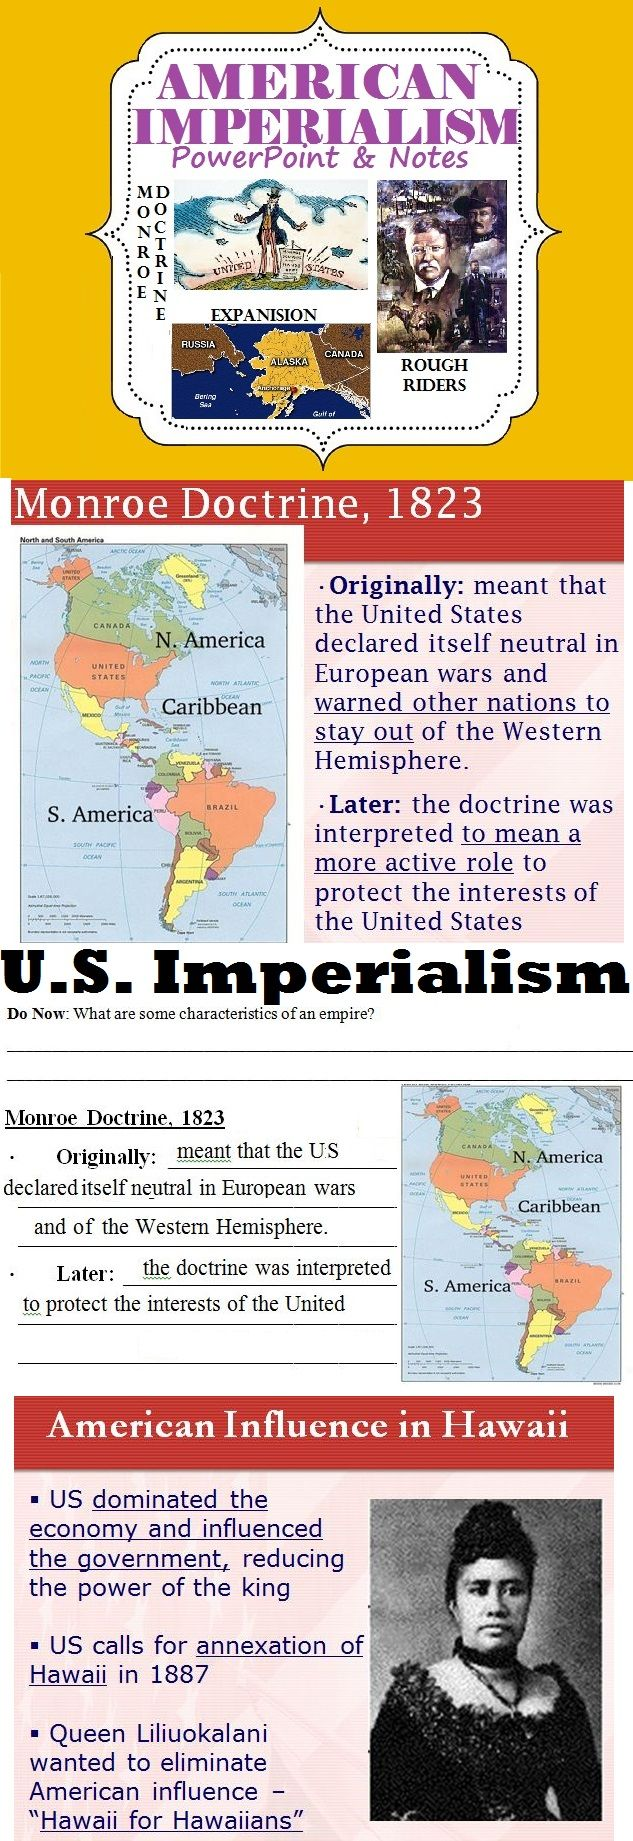 American Imperialism PowerPoint. Many students may not realize that America had an empire (although not as large as Britain or France) and it is vital to inform them of that.